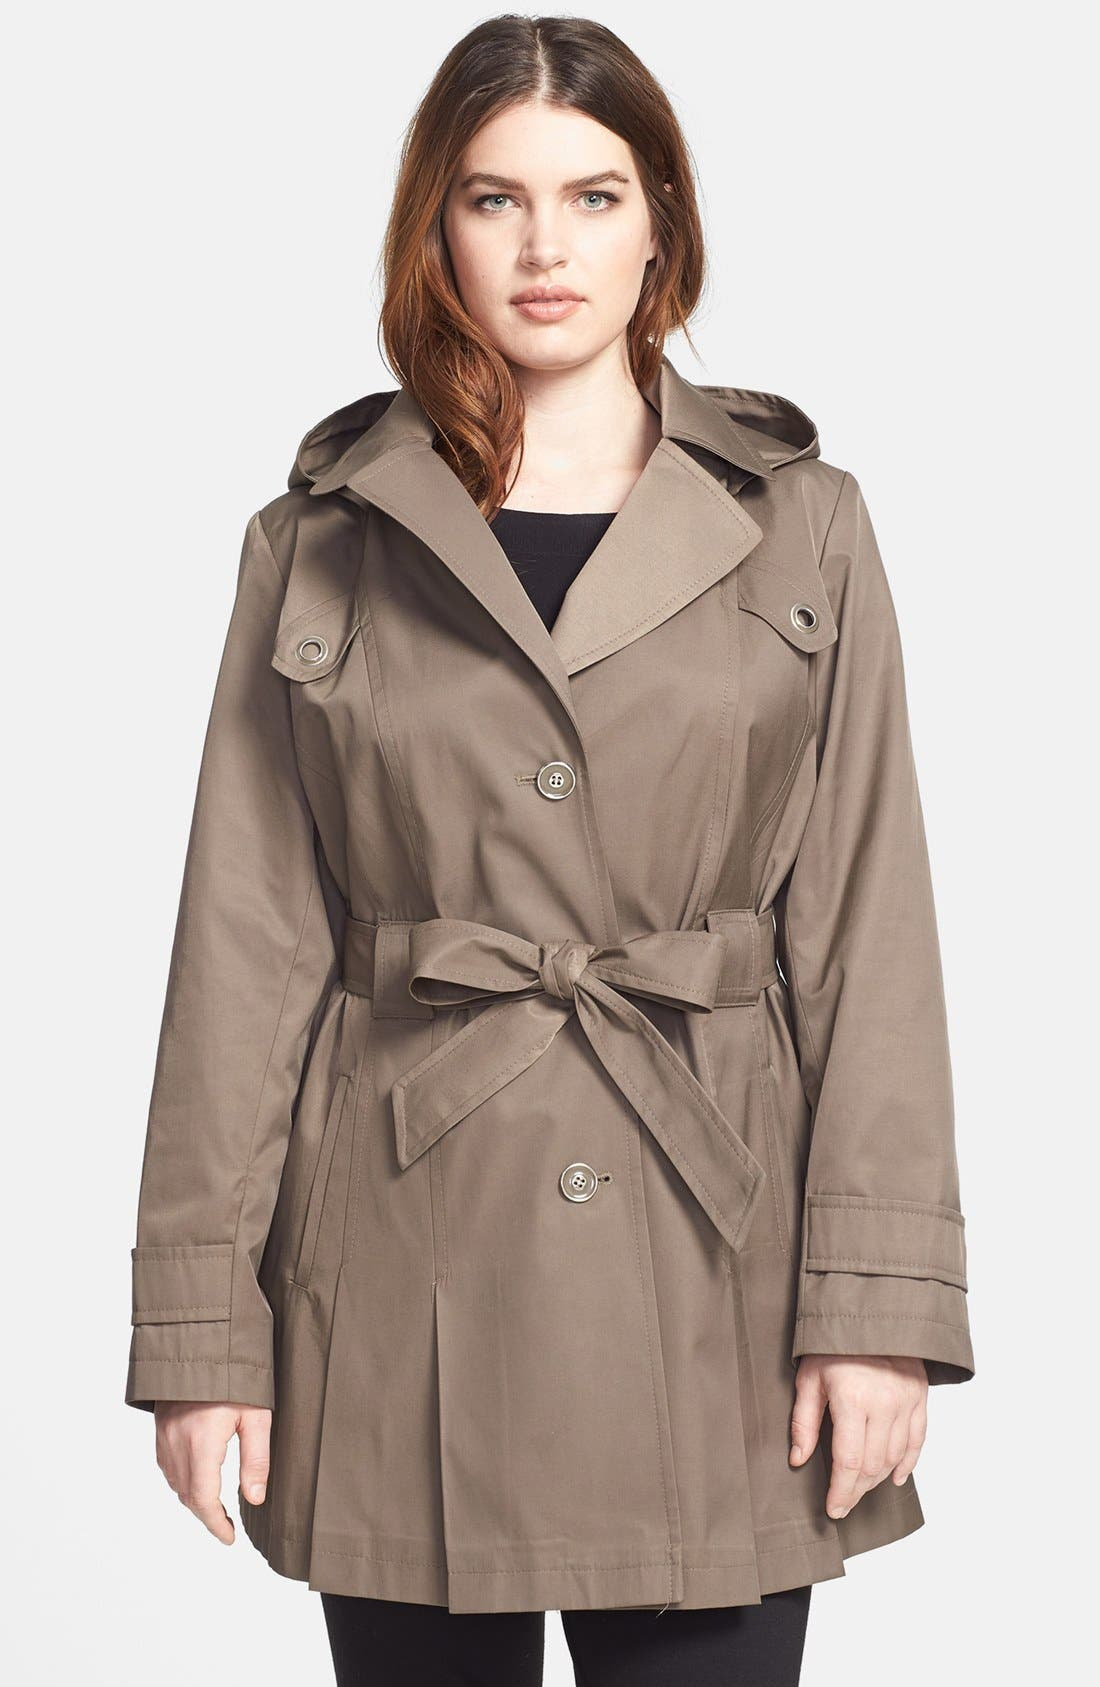 Alternate Image 1 Selected - Via Spiga 'Scarpa' Single Breasted Hooded Trench (Plus Size)